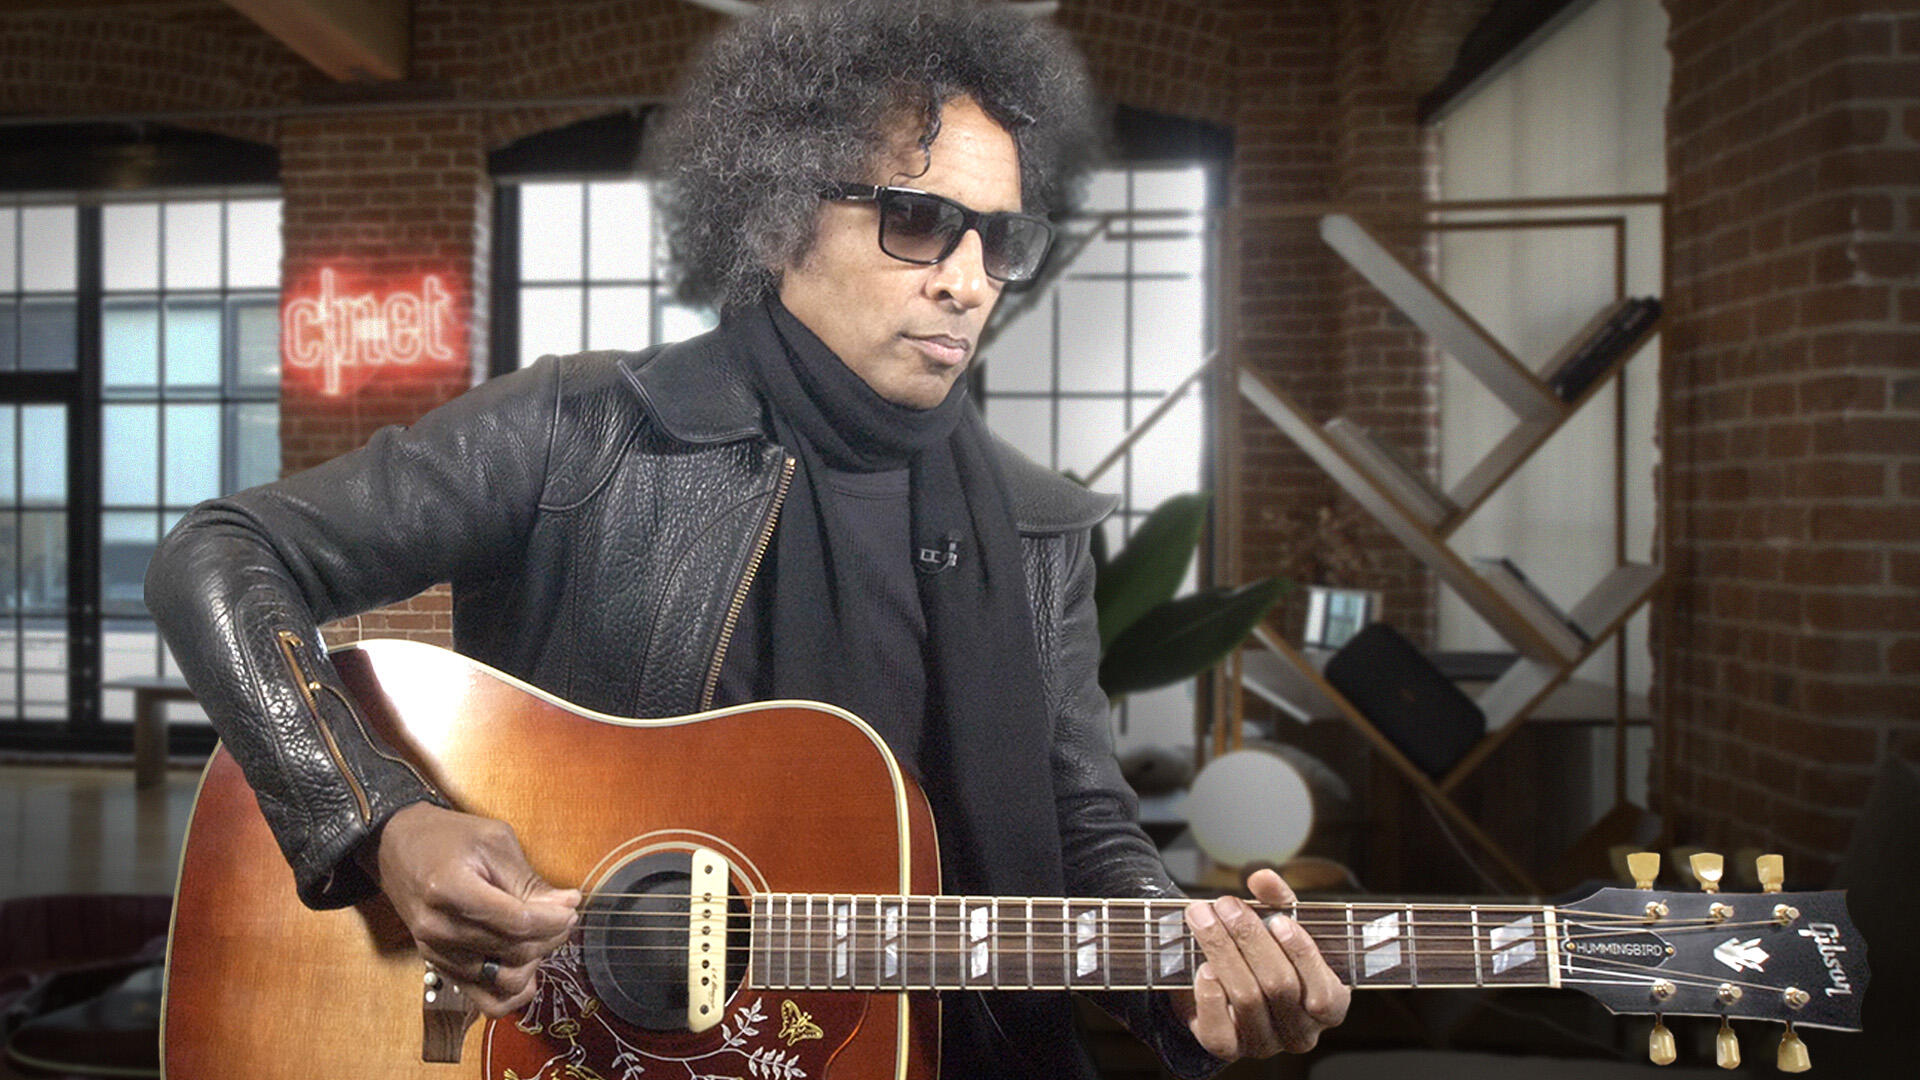 Video: William DuVall plays White Hot from One Alone album